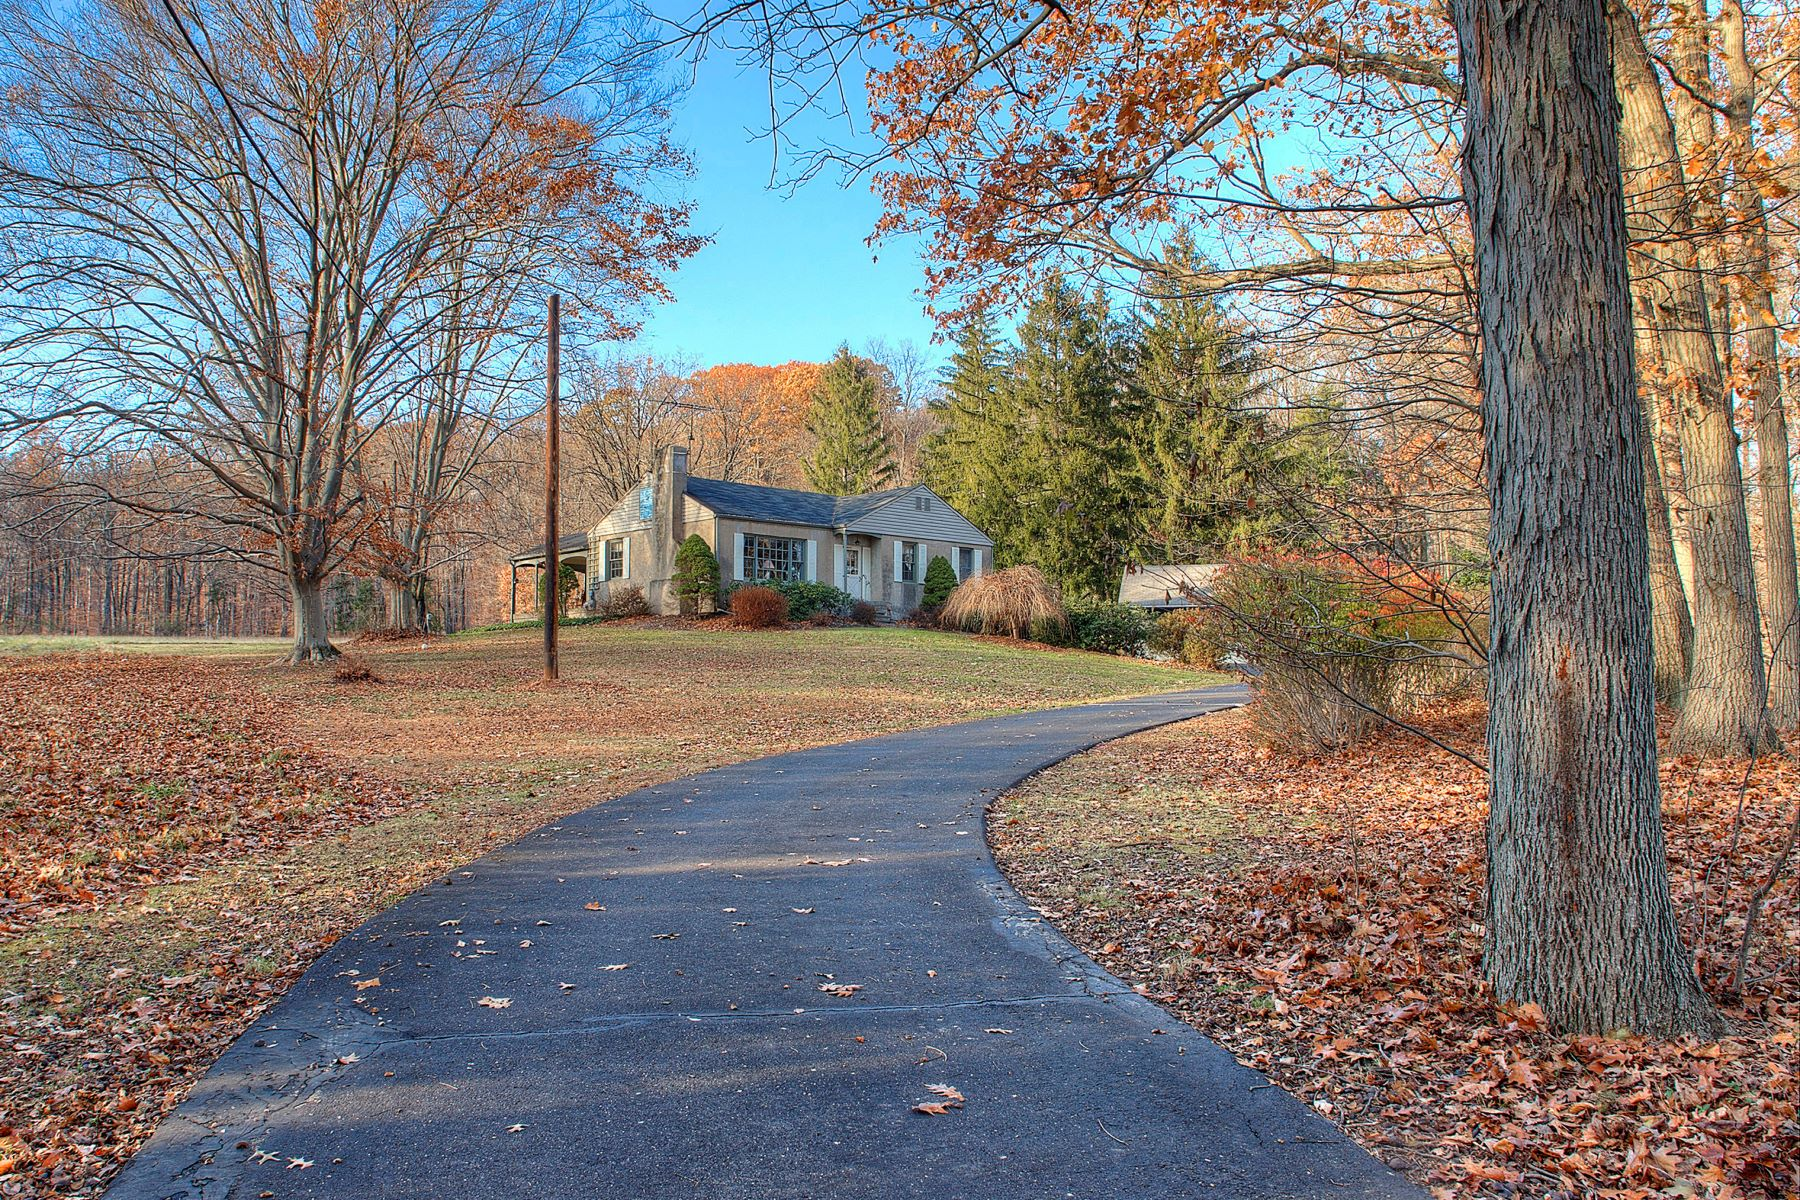 Single Family Homes for Sale at 33 BUCKMANVILLE RD Newtown, Pennsylvania 18940 United States